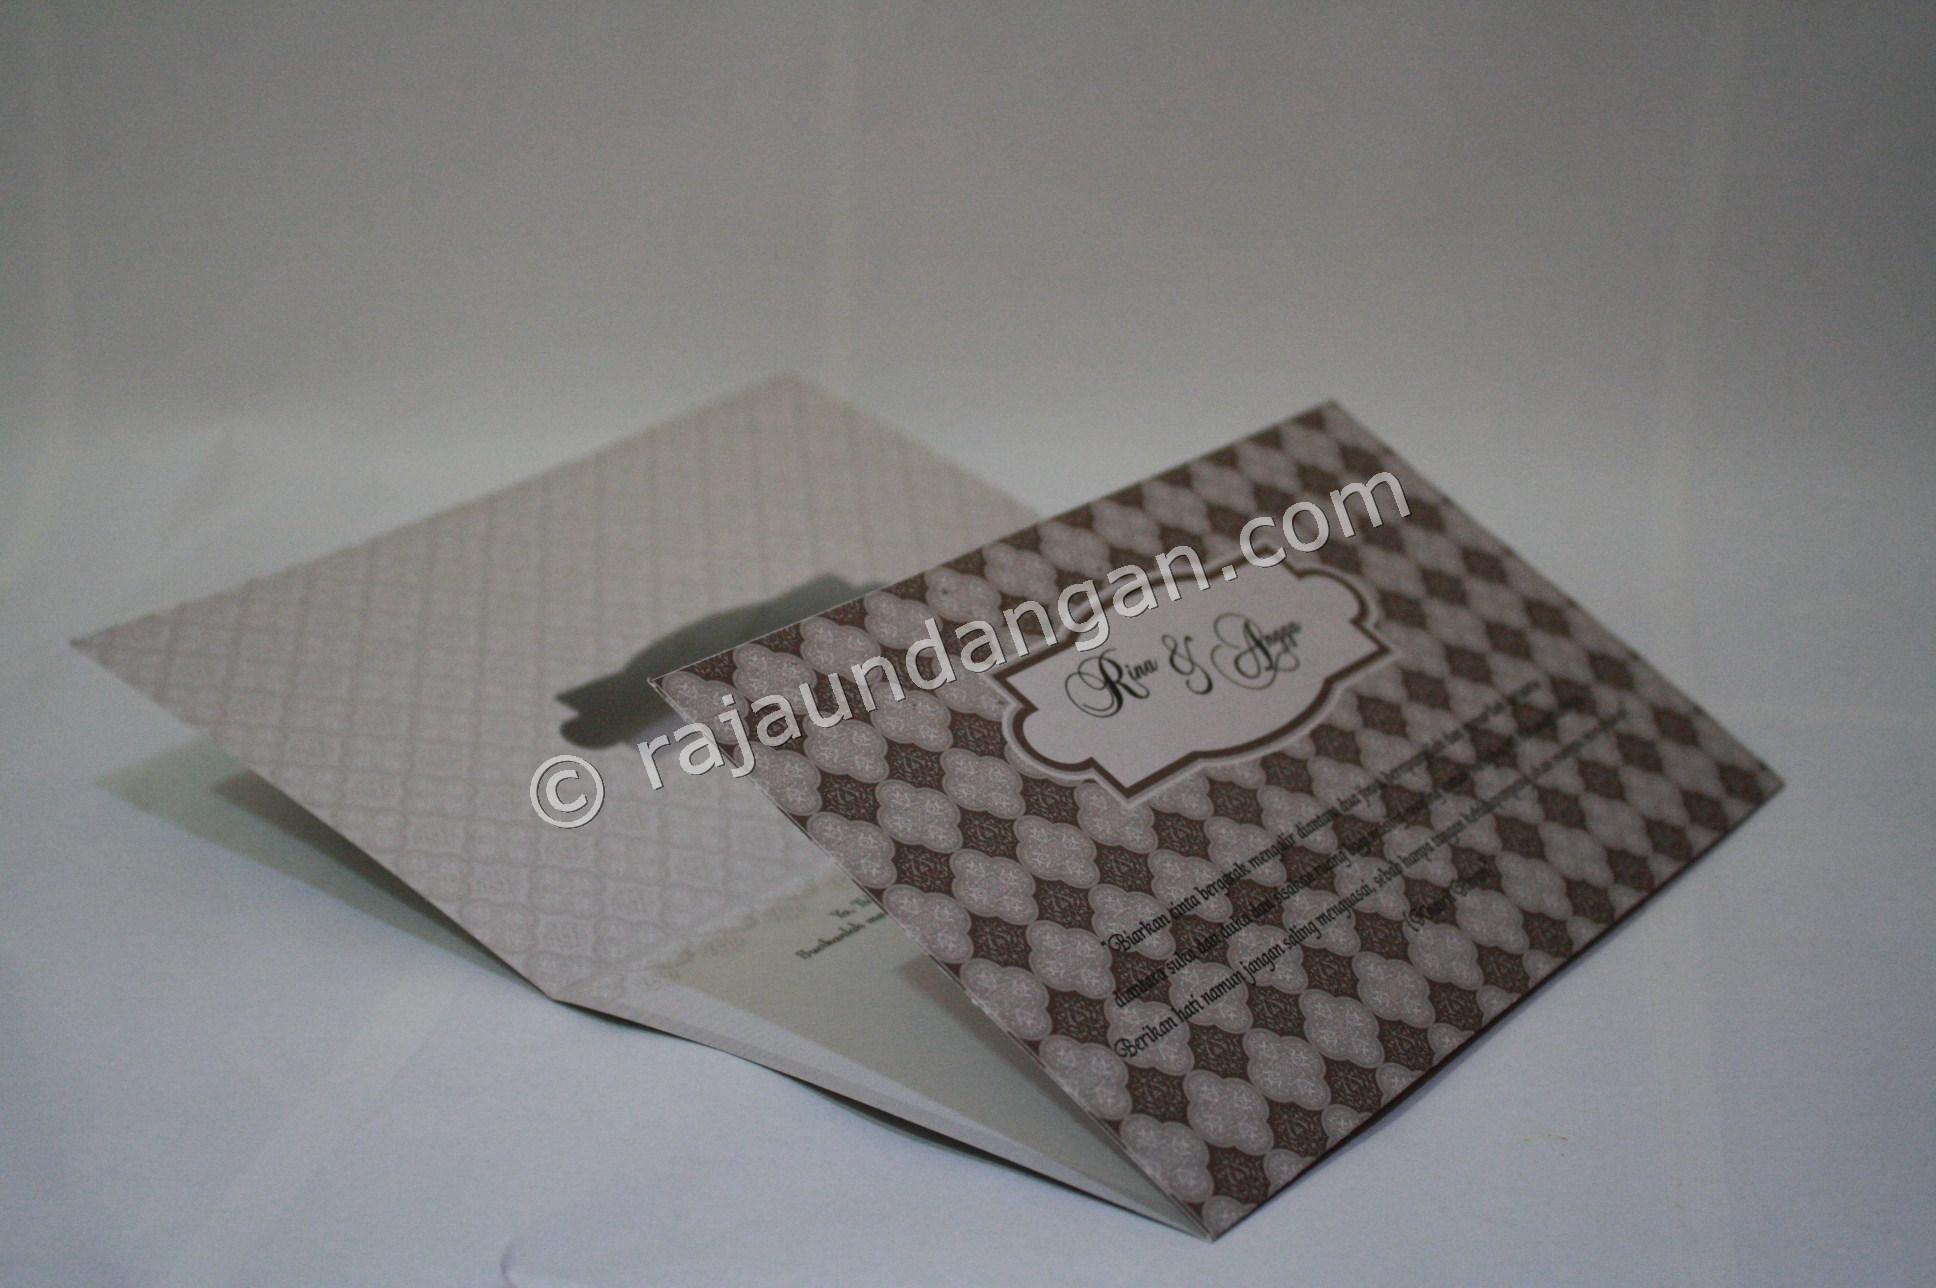 Undangan Pernikahan Softcover Lia dan Doni 4 - Percetakan Wedding Invitations Unik dan Simple di Simomulyo